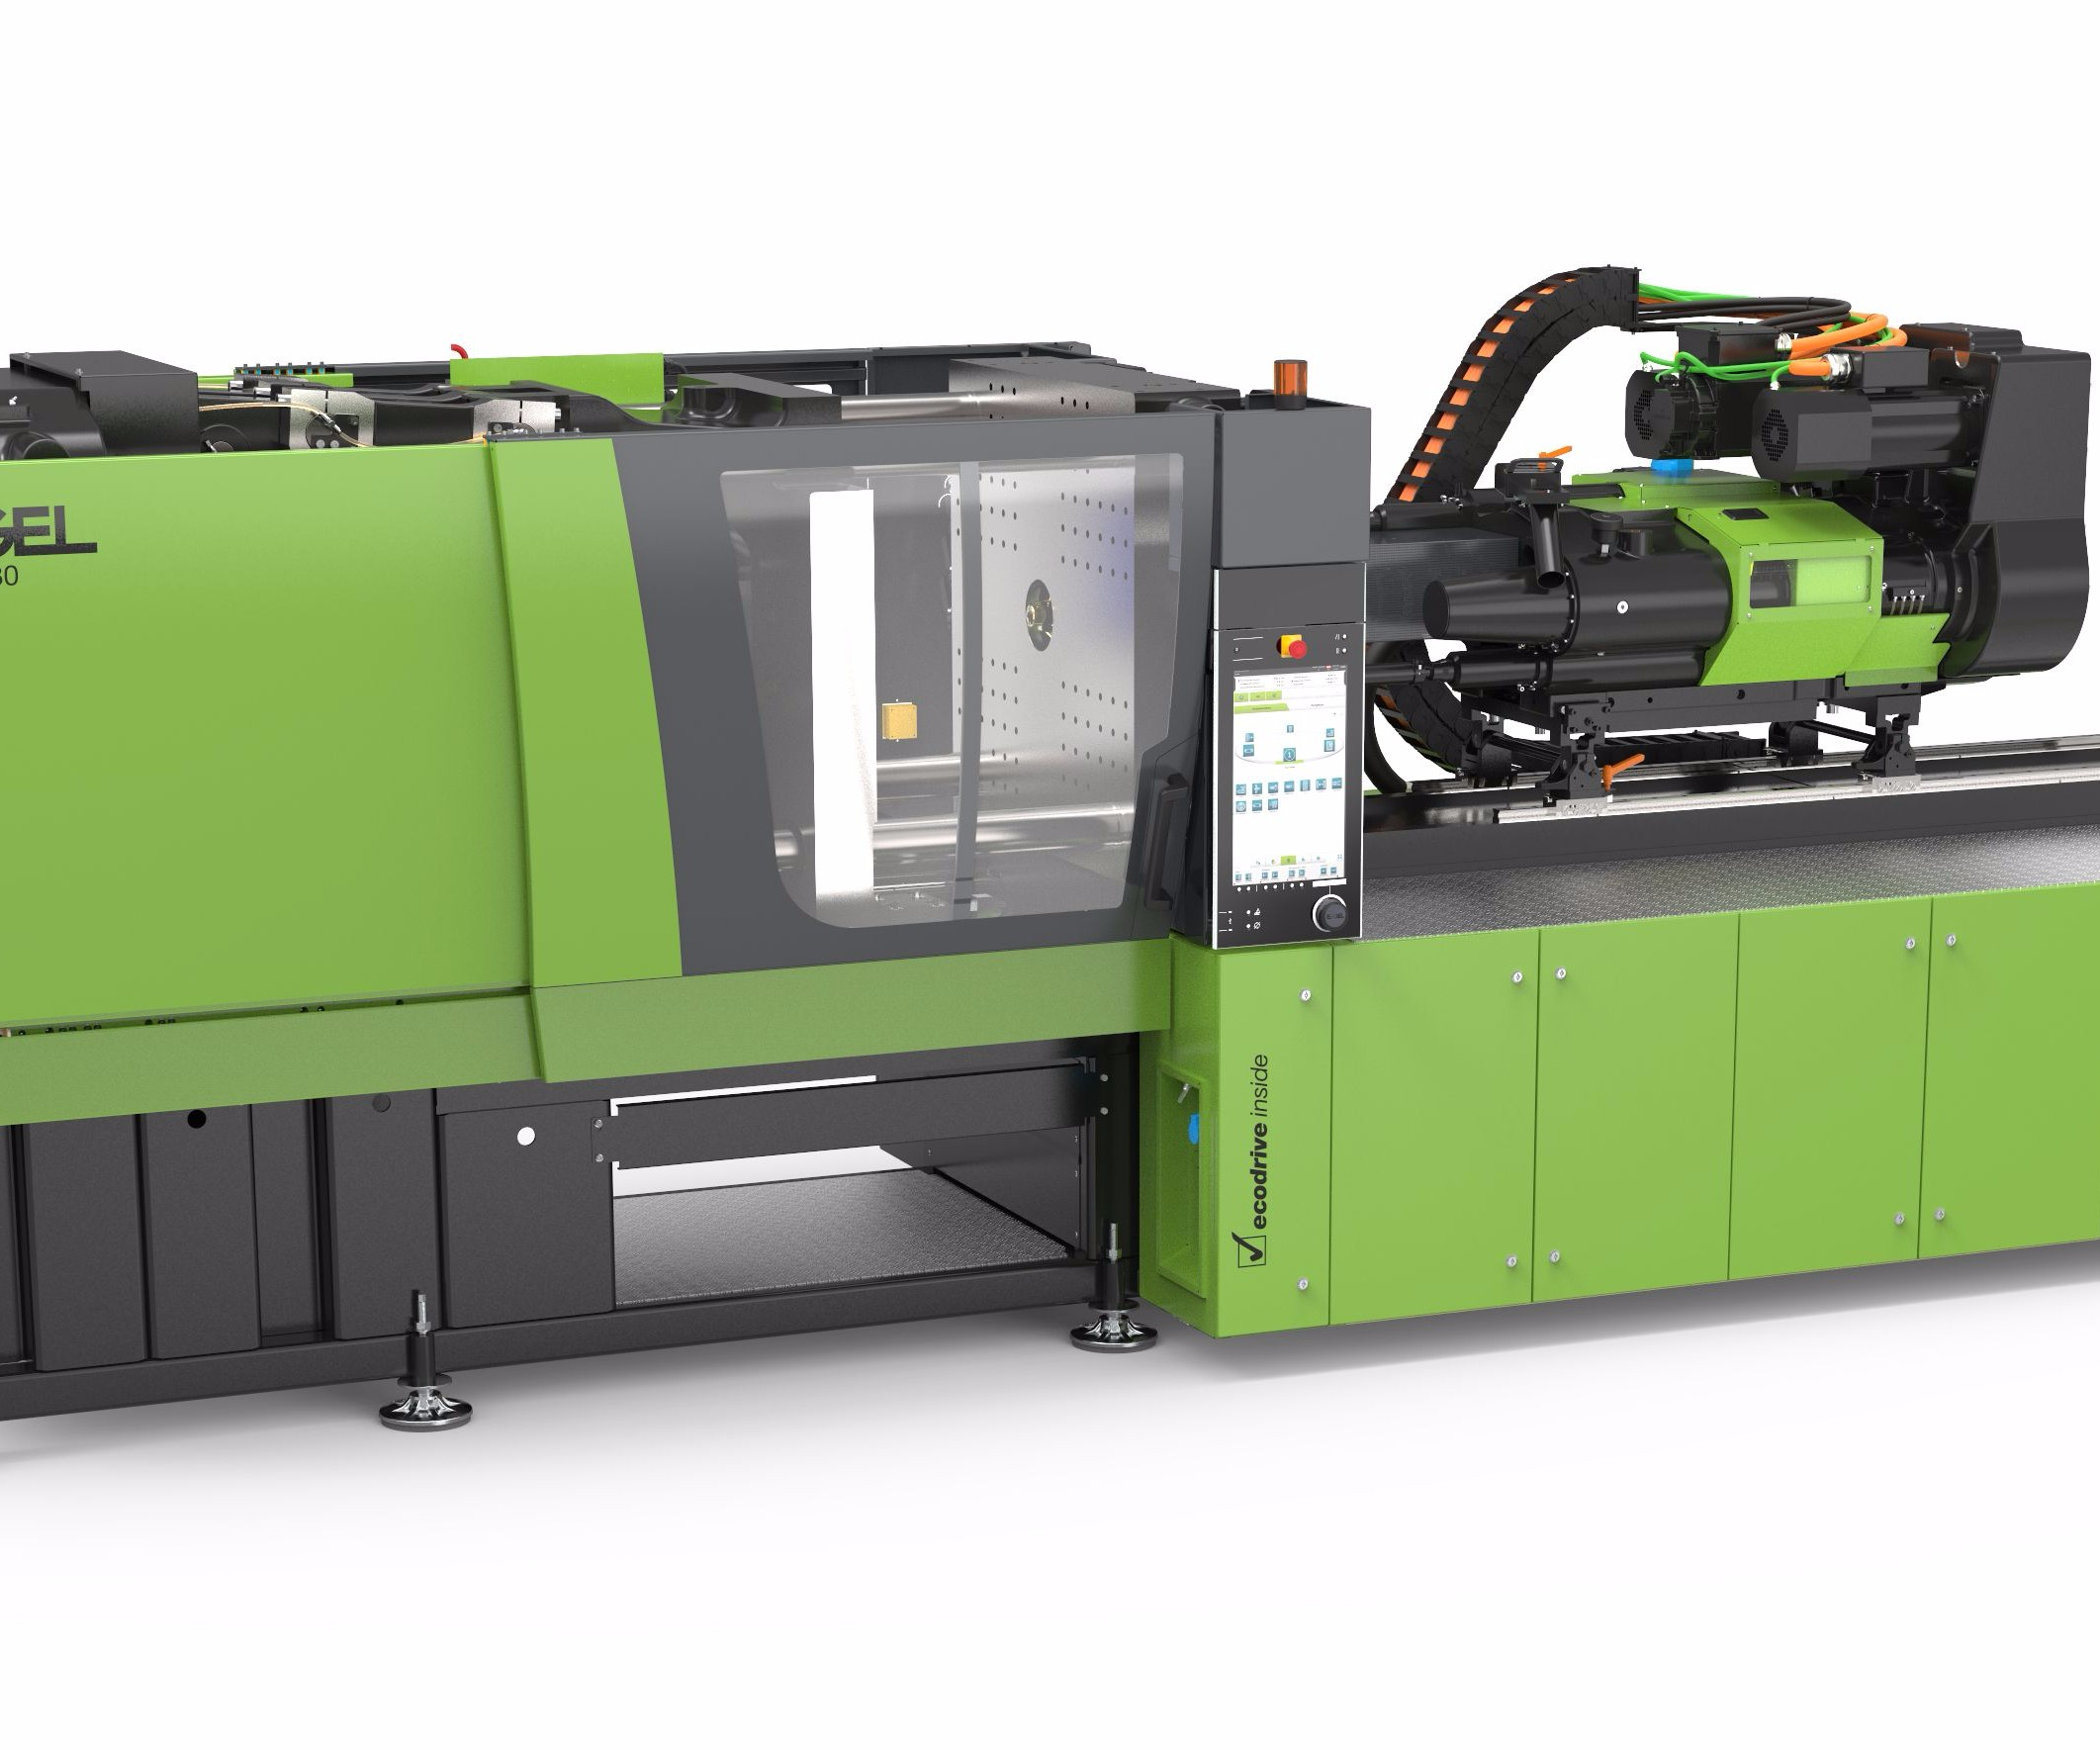 economical all-electric e-mac 280 press from Engel